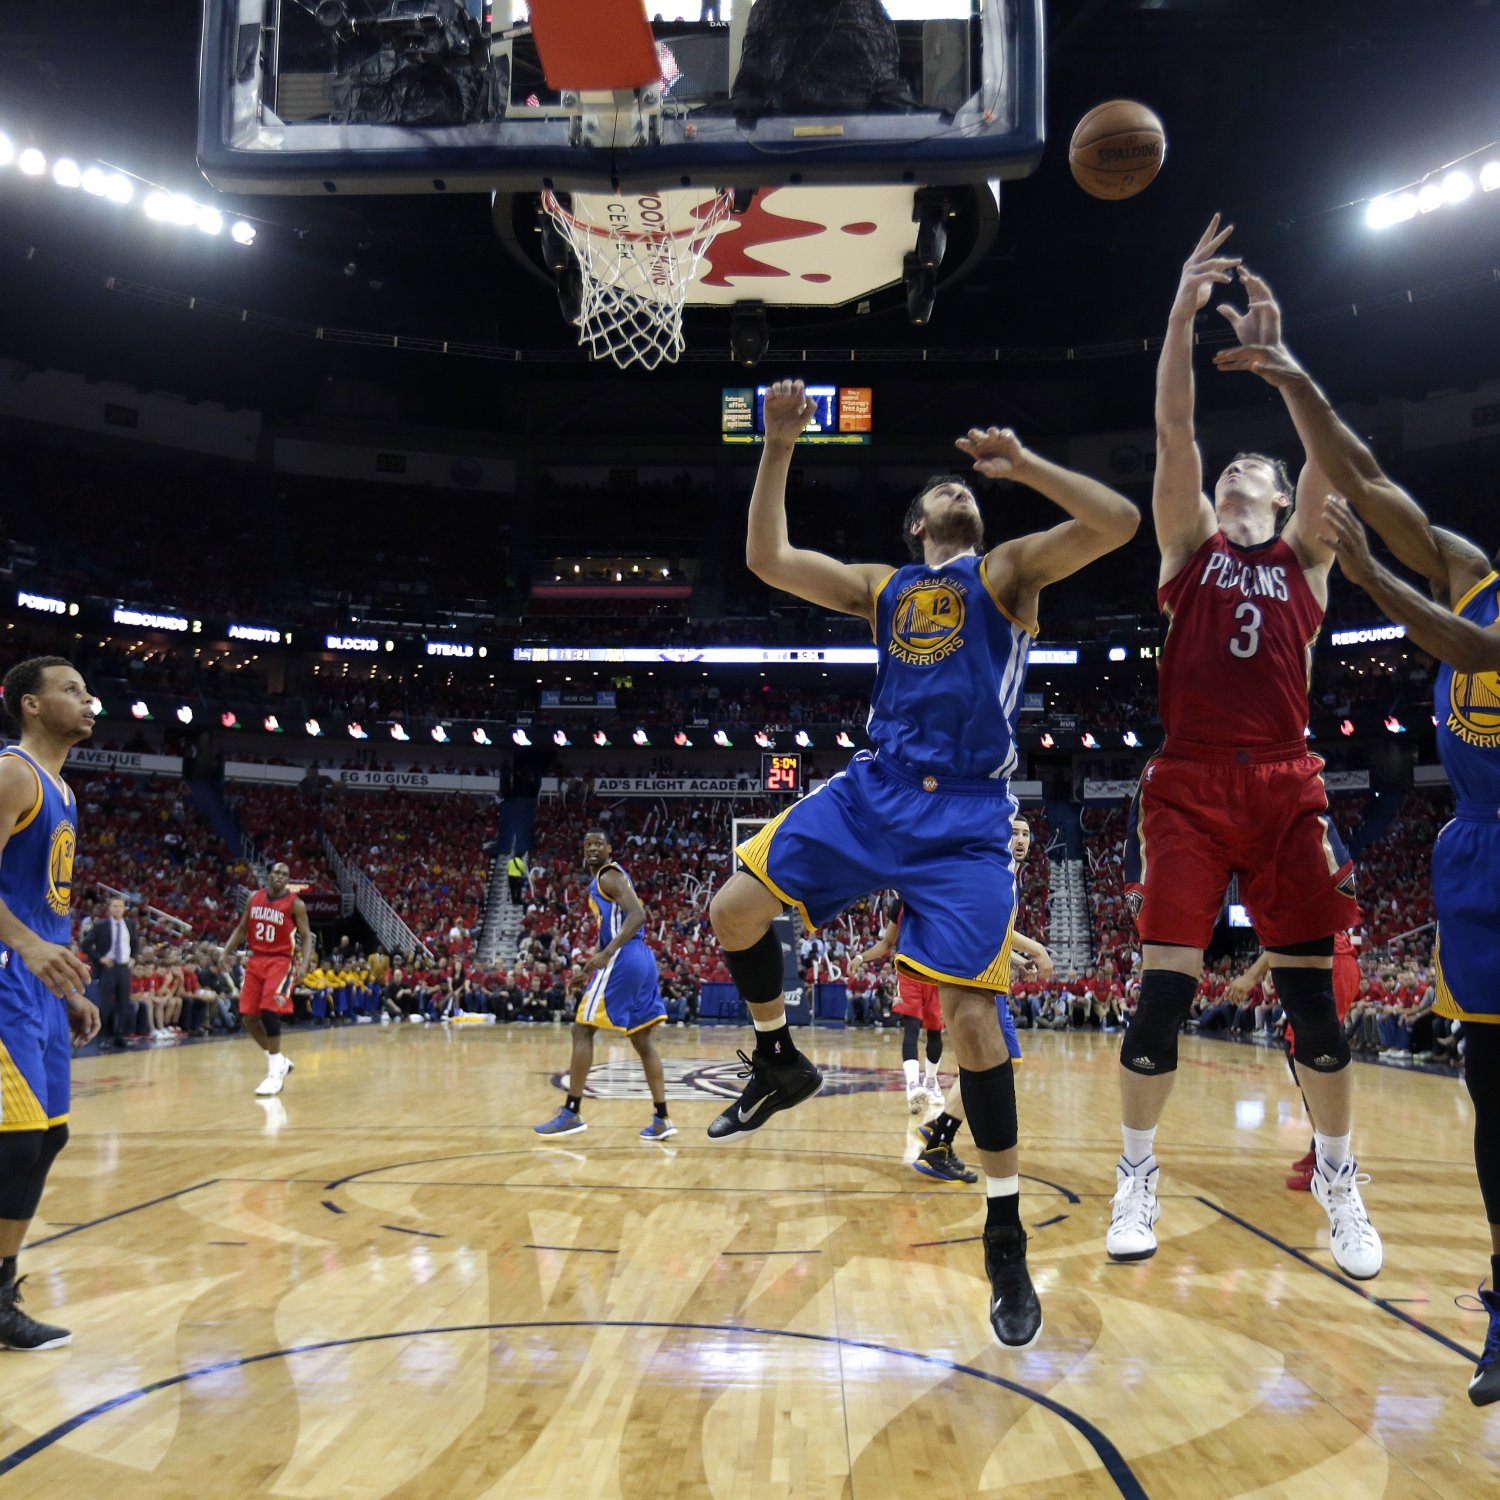 Warriors Vs Pelicans Game 3 Live Stream Free: Warriors Vs. Pelicans: Game 3 Video Highlights And Recap